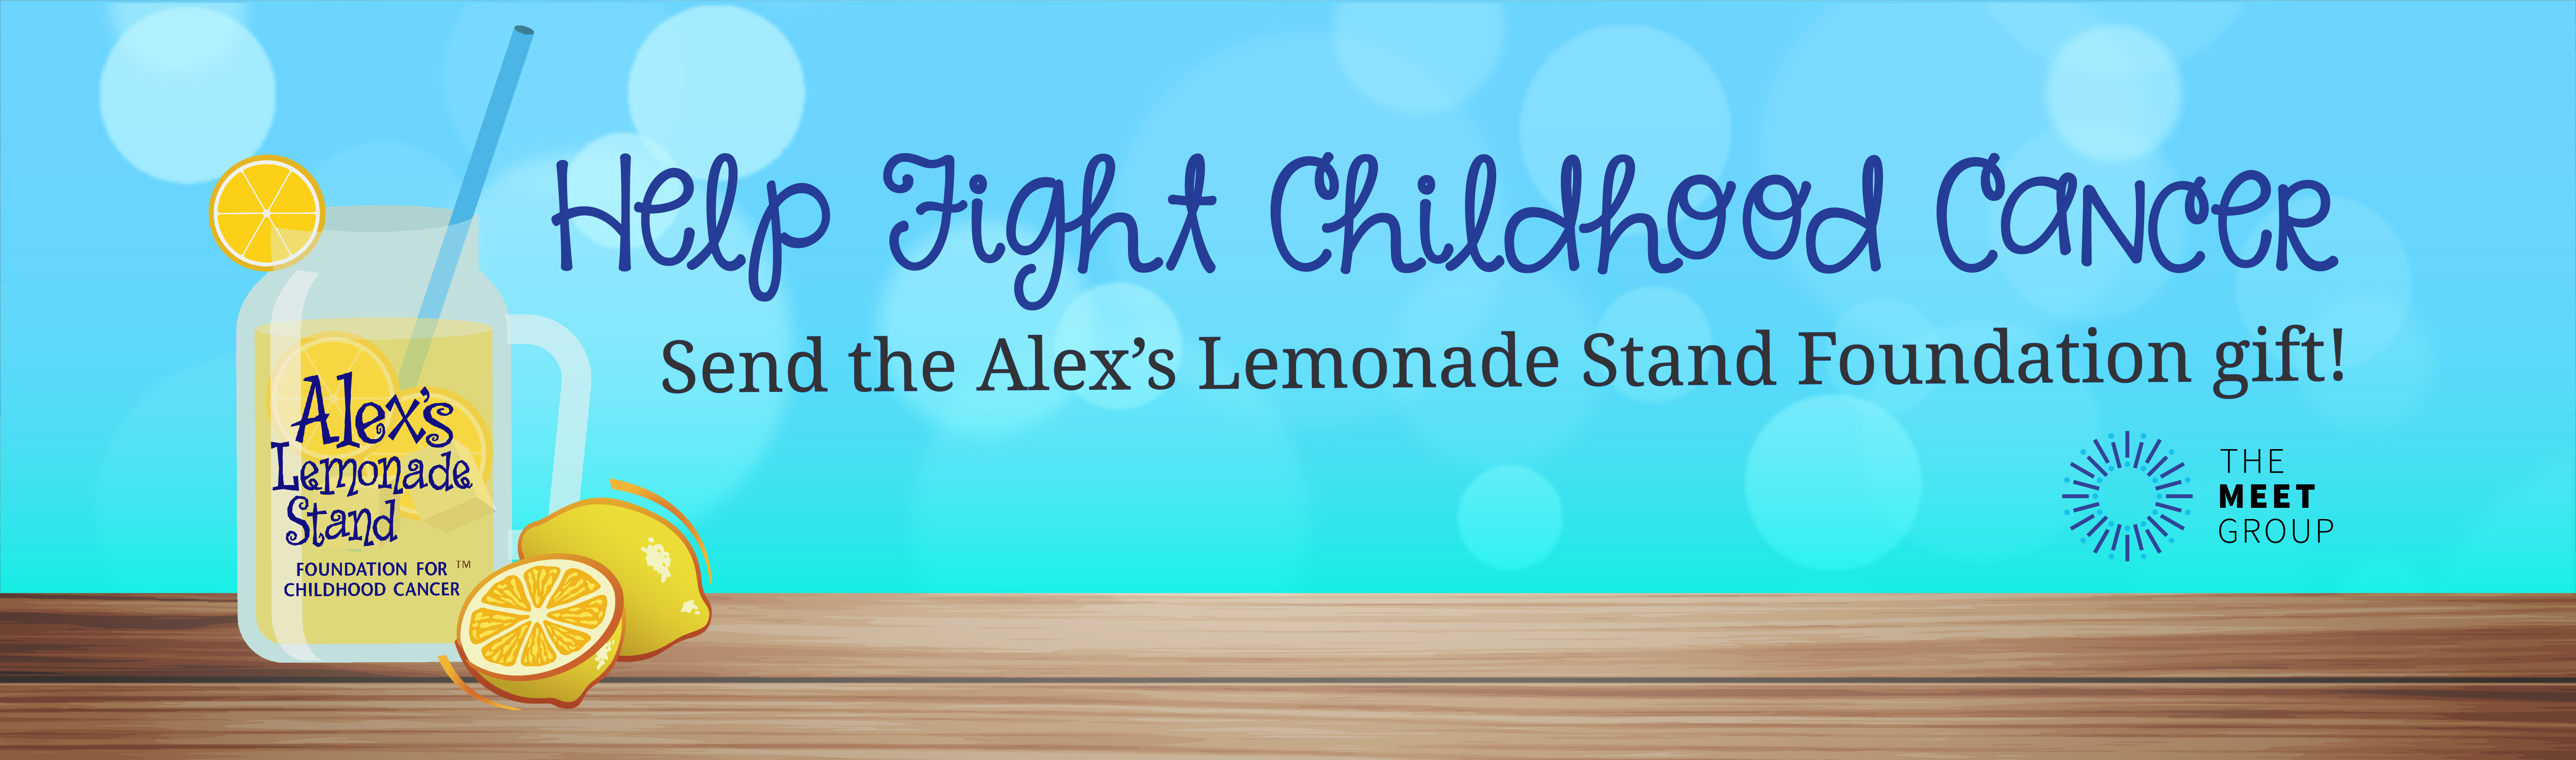 The Meet Group Joins Alex's Lemonade Stand Foundation to Help